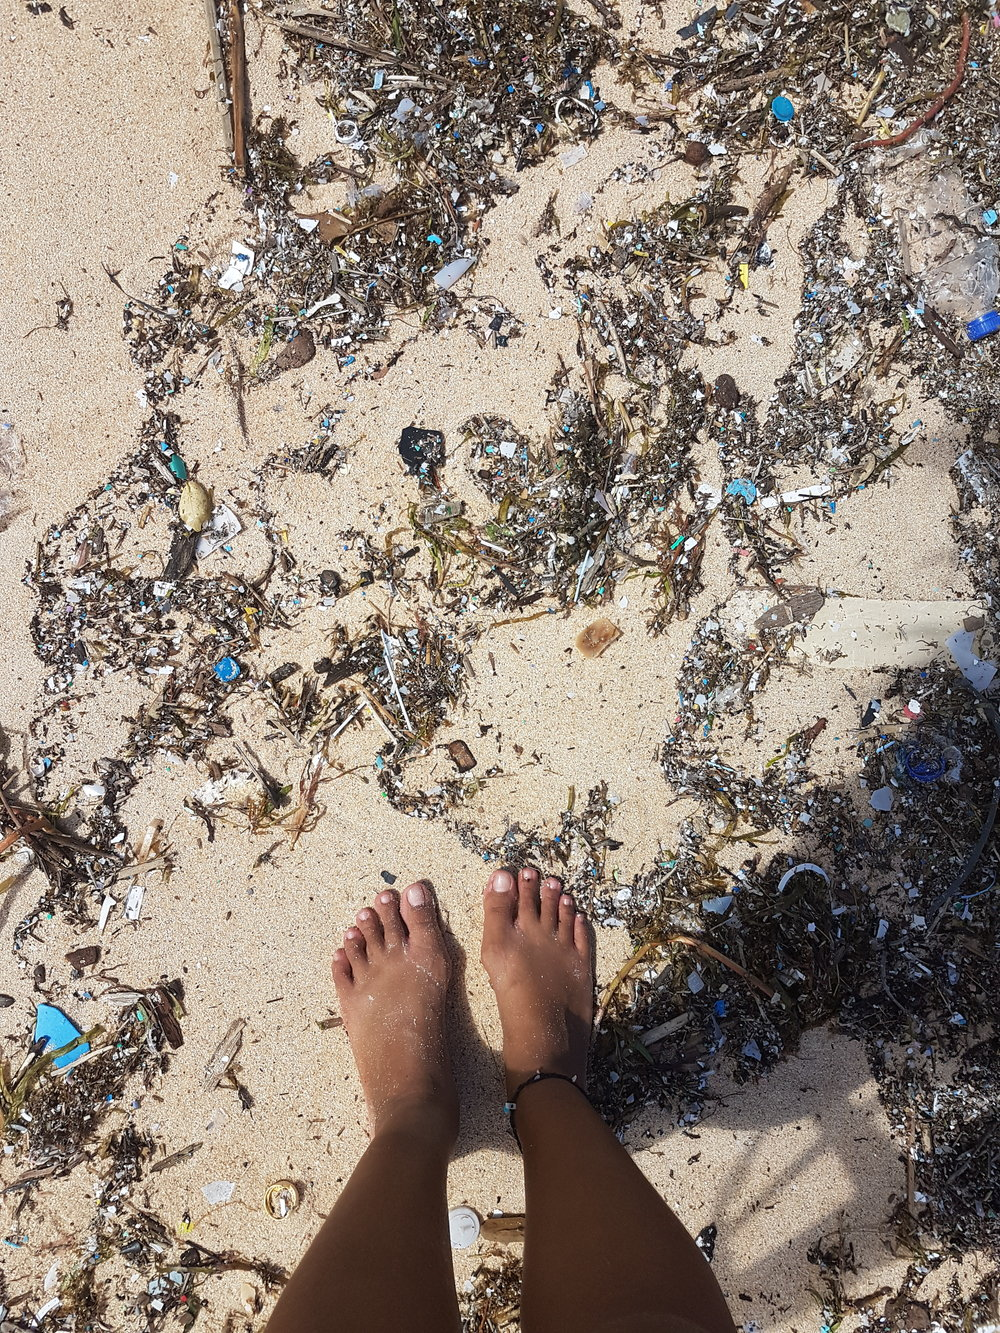 These kind of trash mixed with microplastics lined up the whole stretch of the beach.